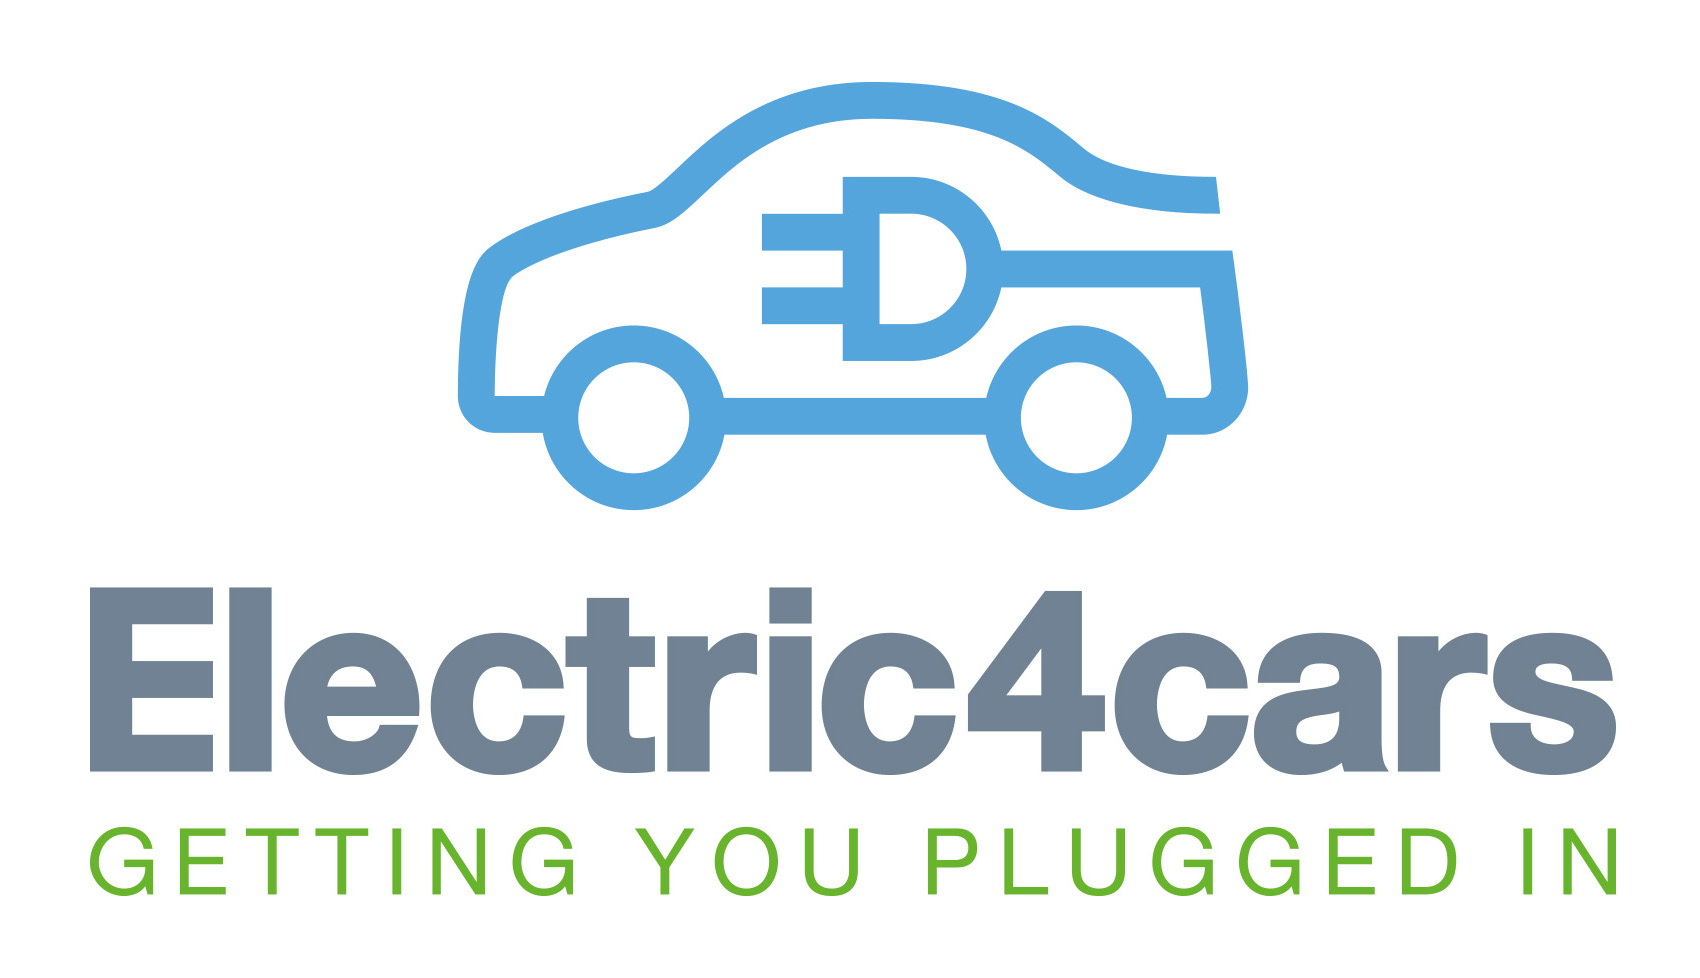 Electric4cars